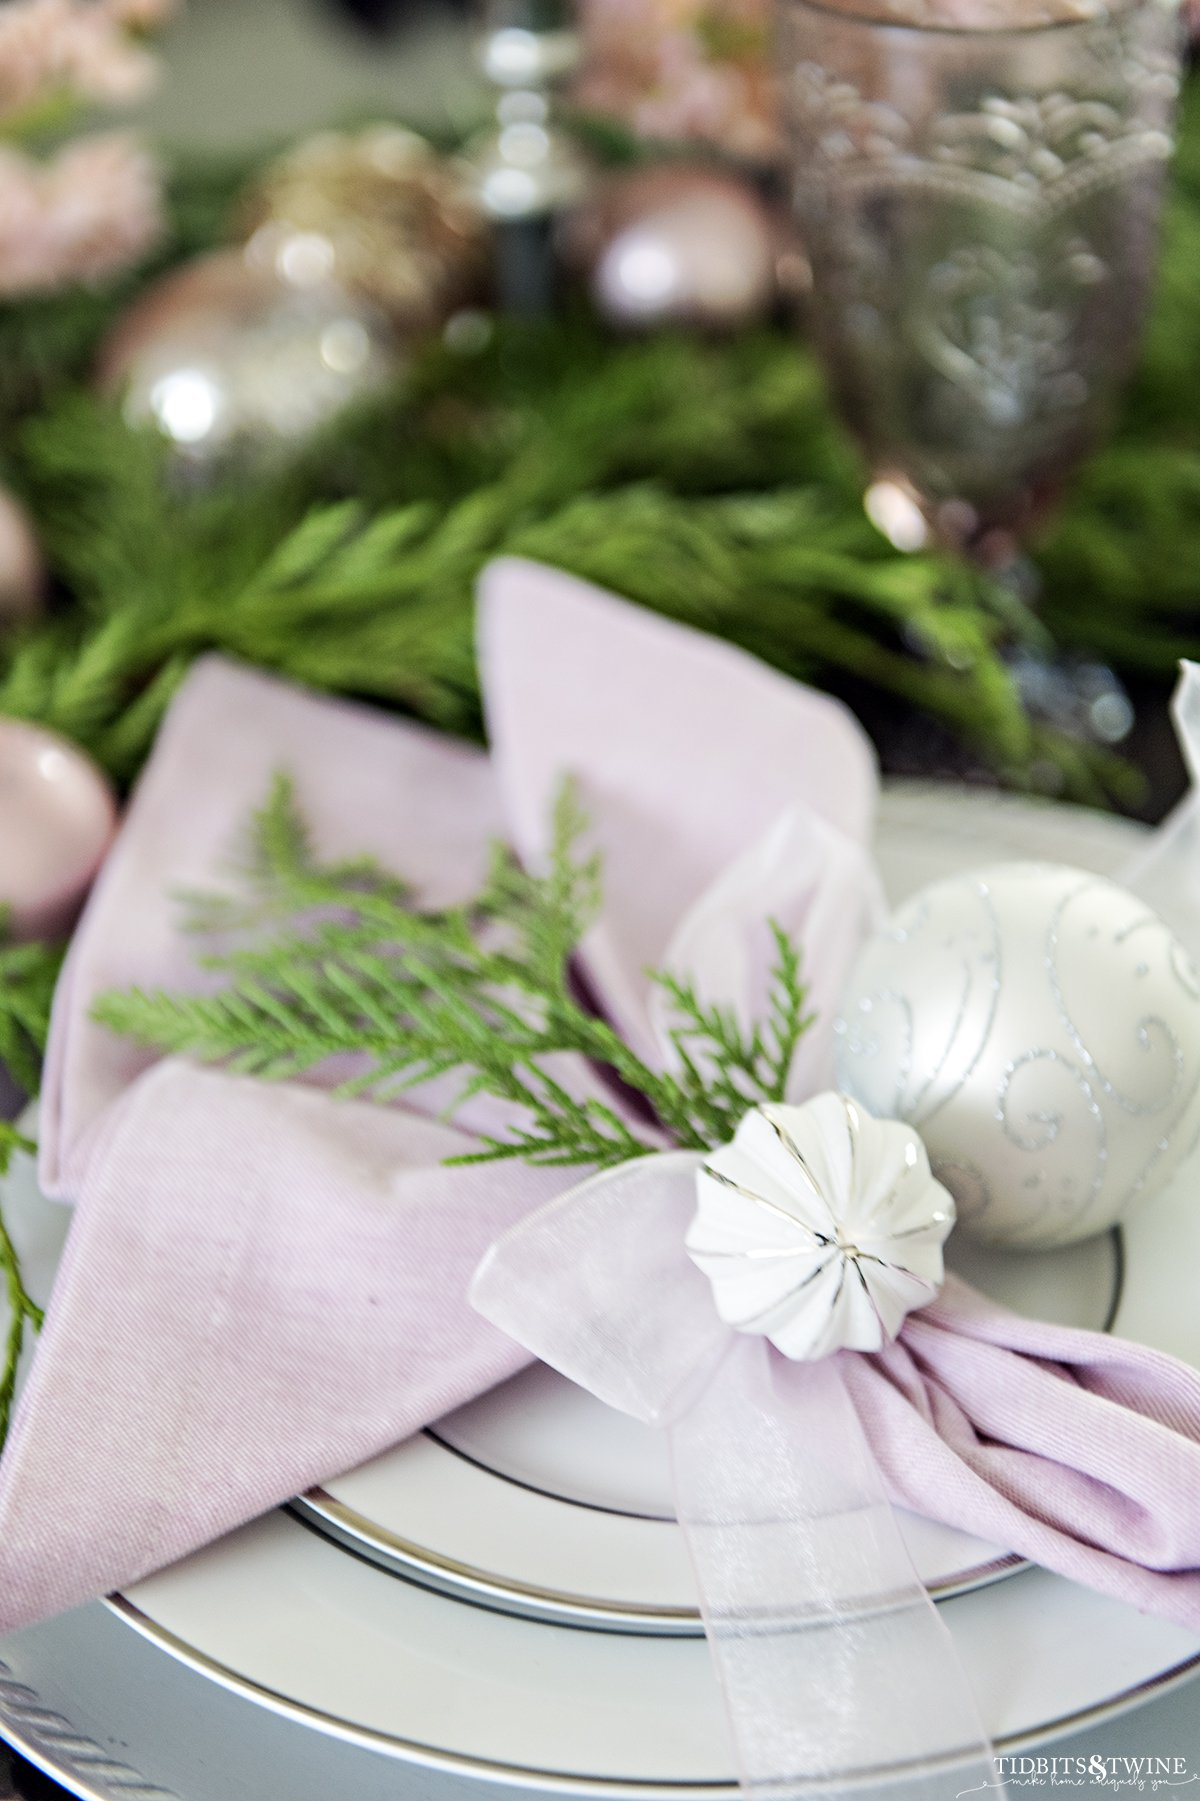 White dishes with silver rim with pink linen napkin on top tied with white ornaments